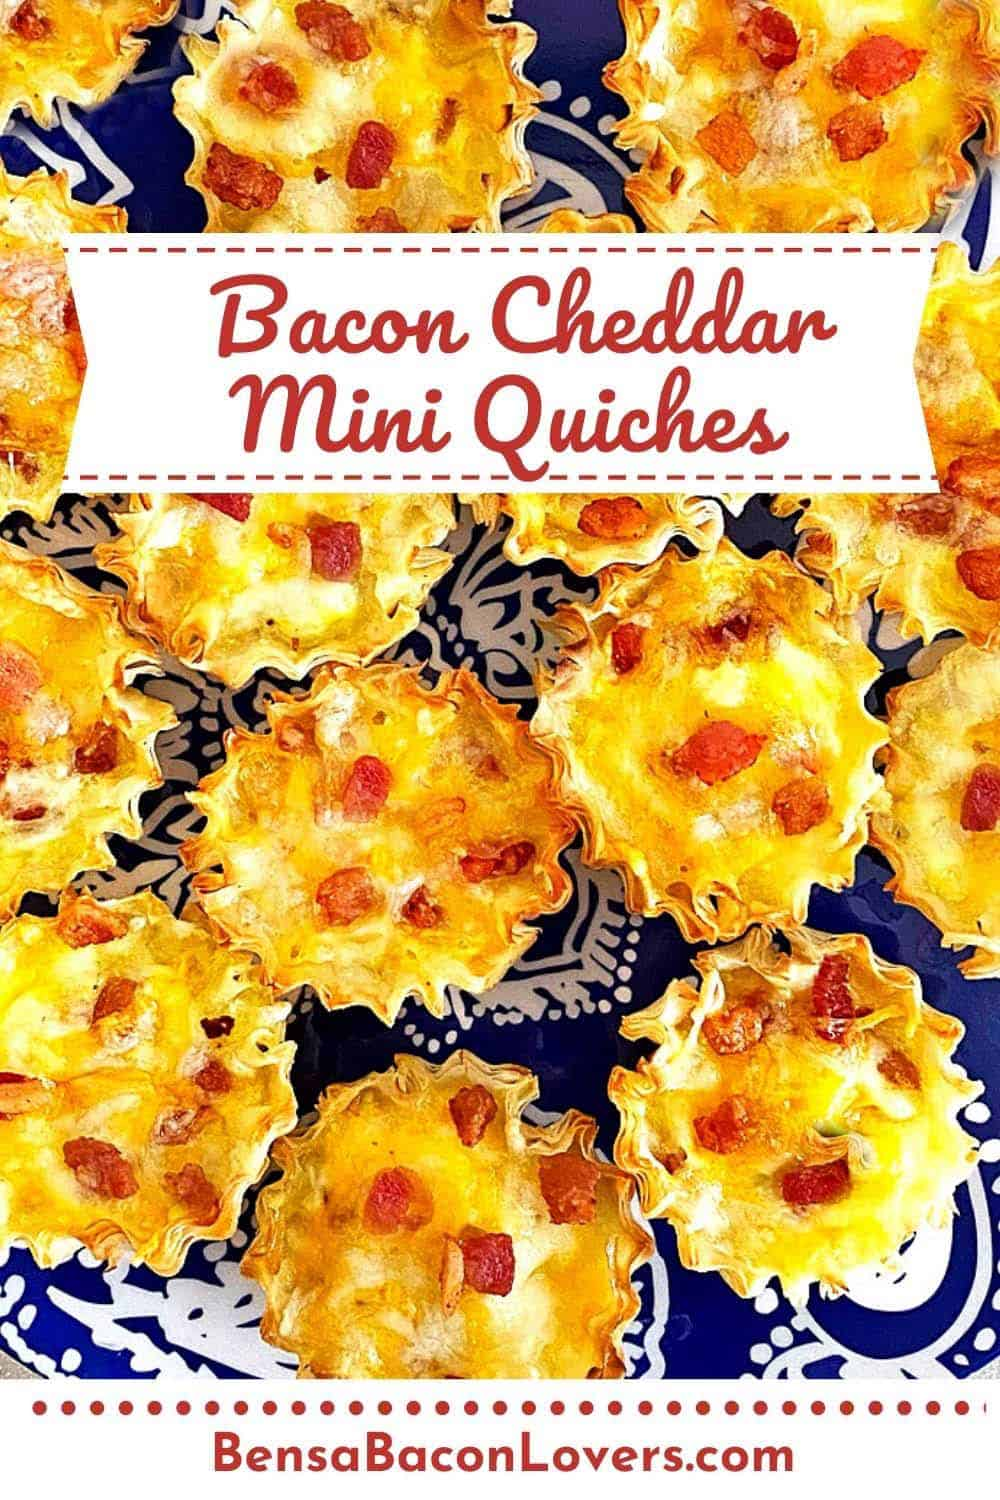 A close up shot of a dozen mini quiches on a blue plate with text: Bacon Cheddar Mini Quiches